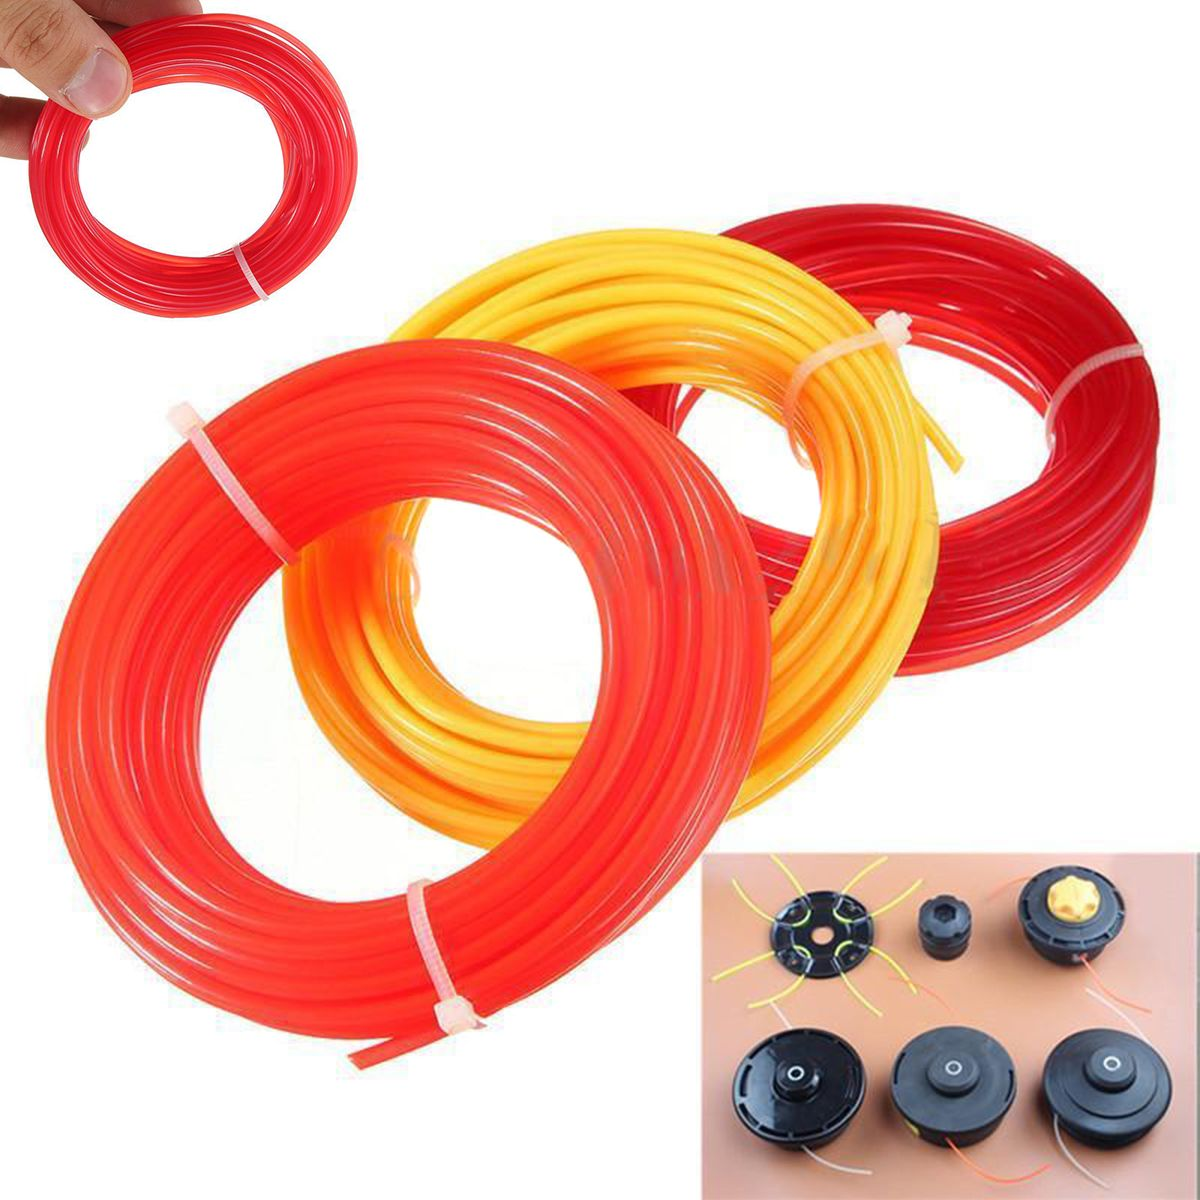 2017 Nylon Strimmer Line Mayitr Brushcutter Grass Trimmer Strimmer Line Cord Wire Round String Lawn Mover Parts 10m x 2mm mayitr trimmer head petrol strimmer bump feed line spool brush cutter grass lawn mover parts garden tools